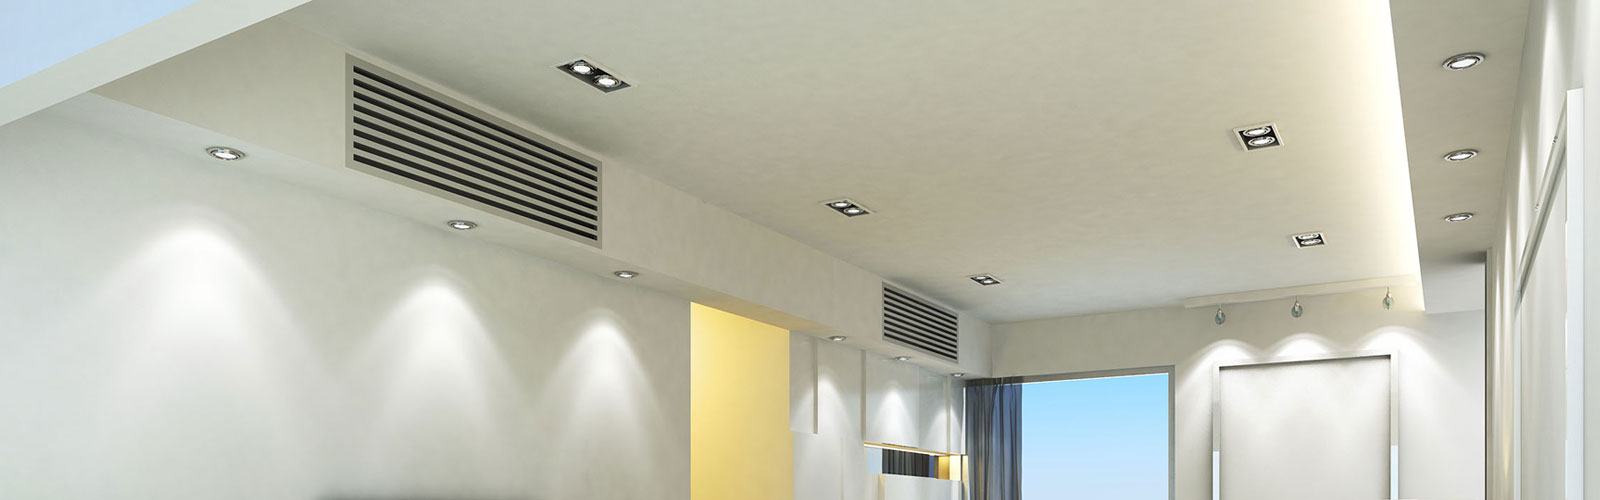 Ducted Heating Systems Installation Melbourne